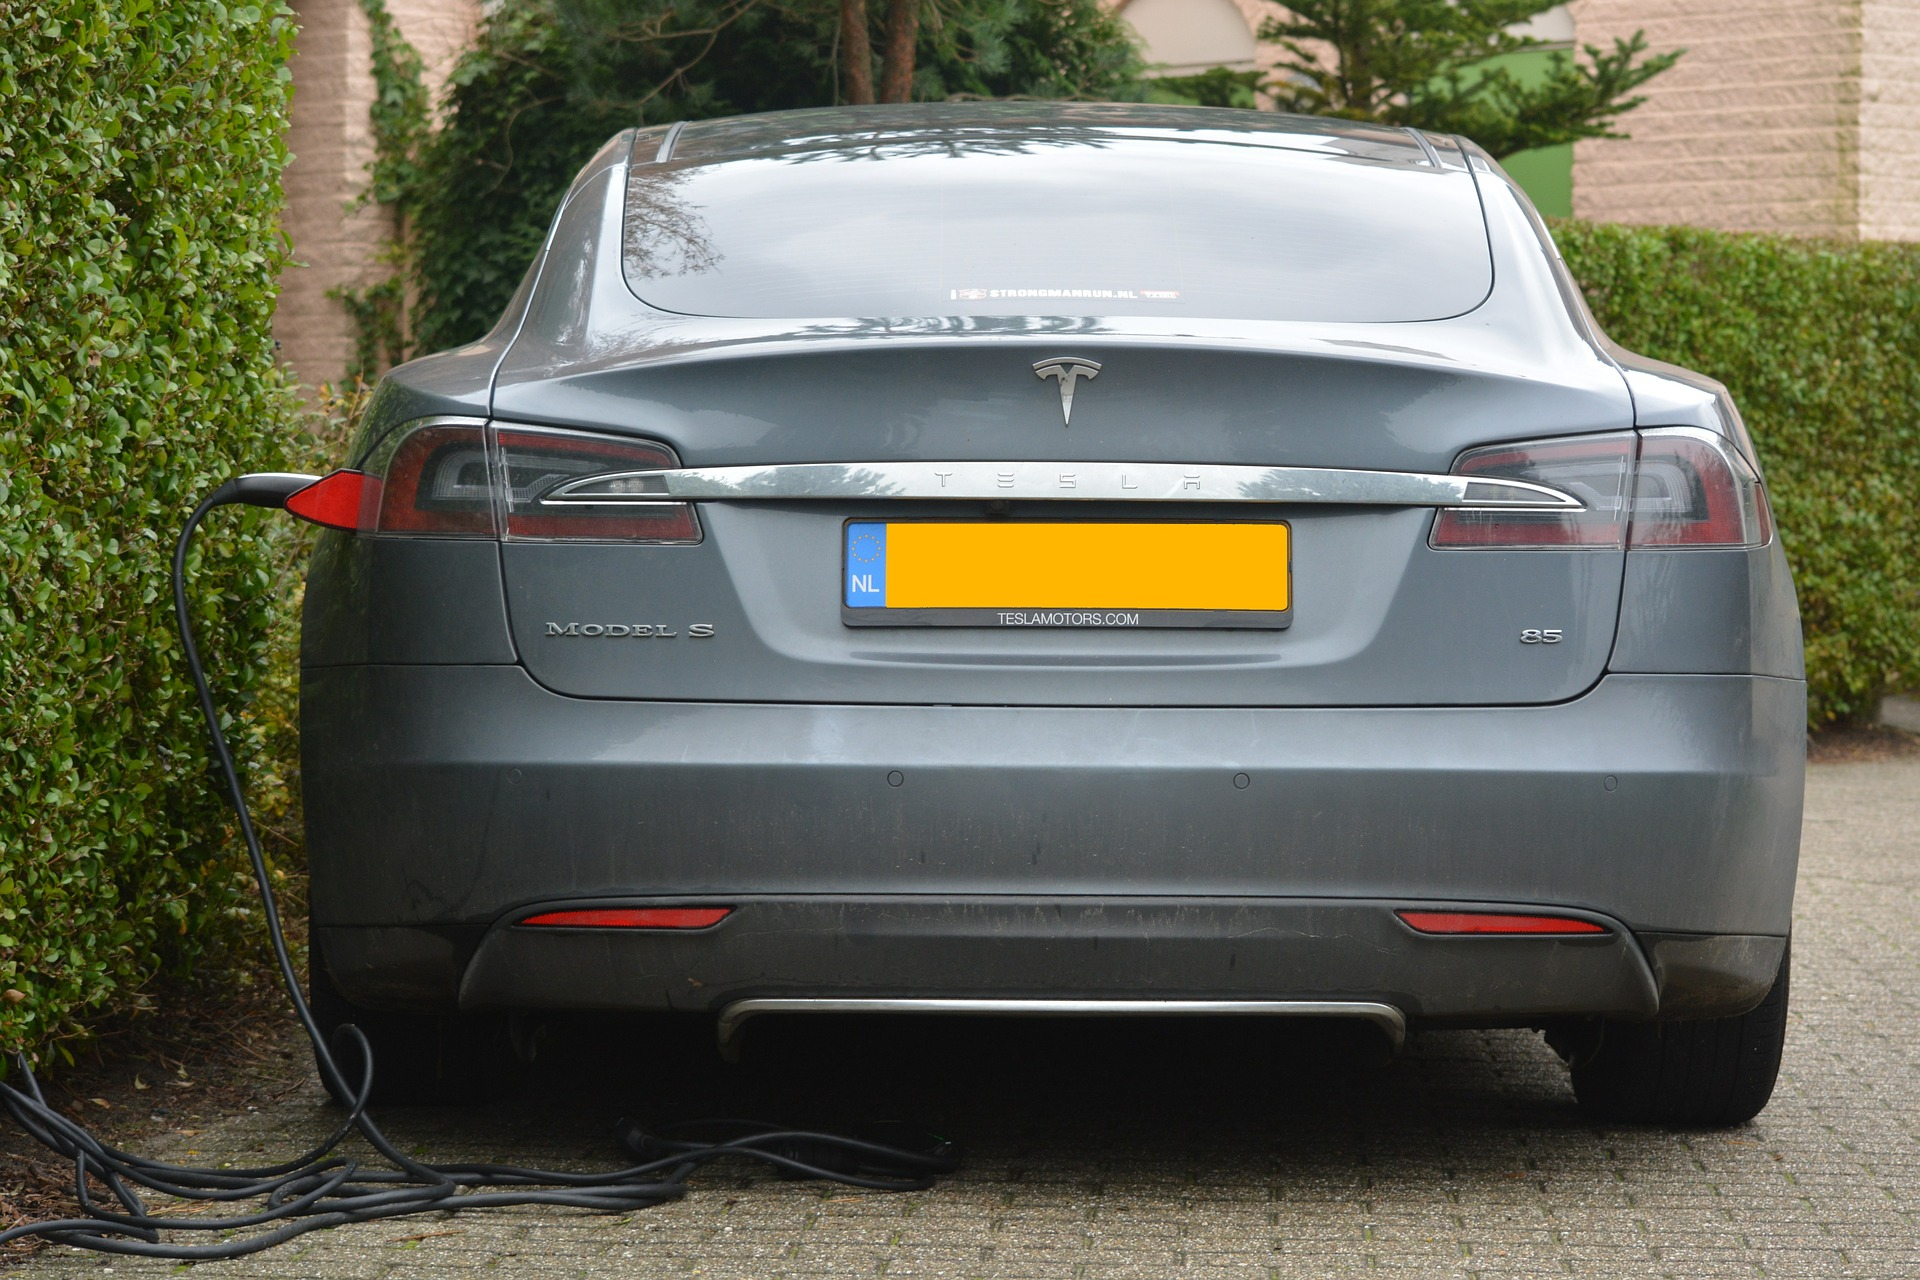 The Tesla effect: Can you get rich from electric cars?